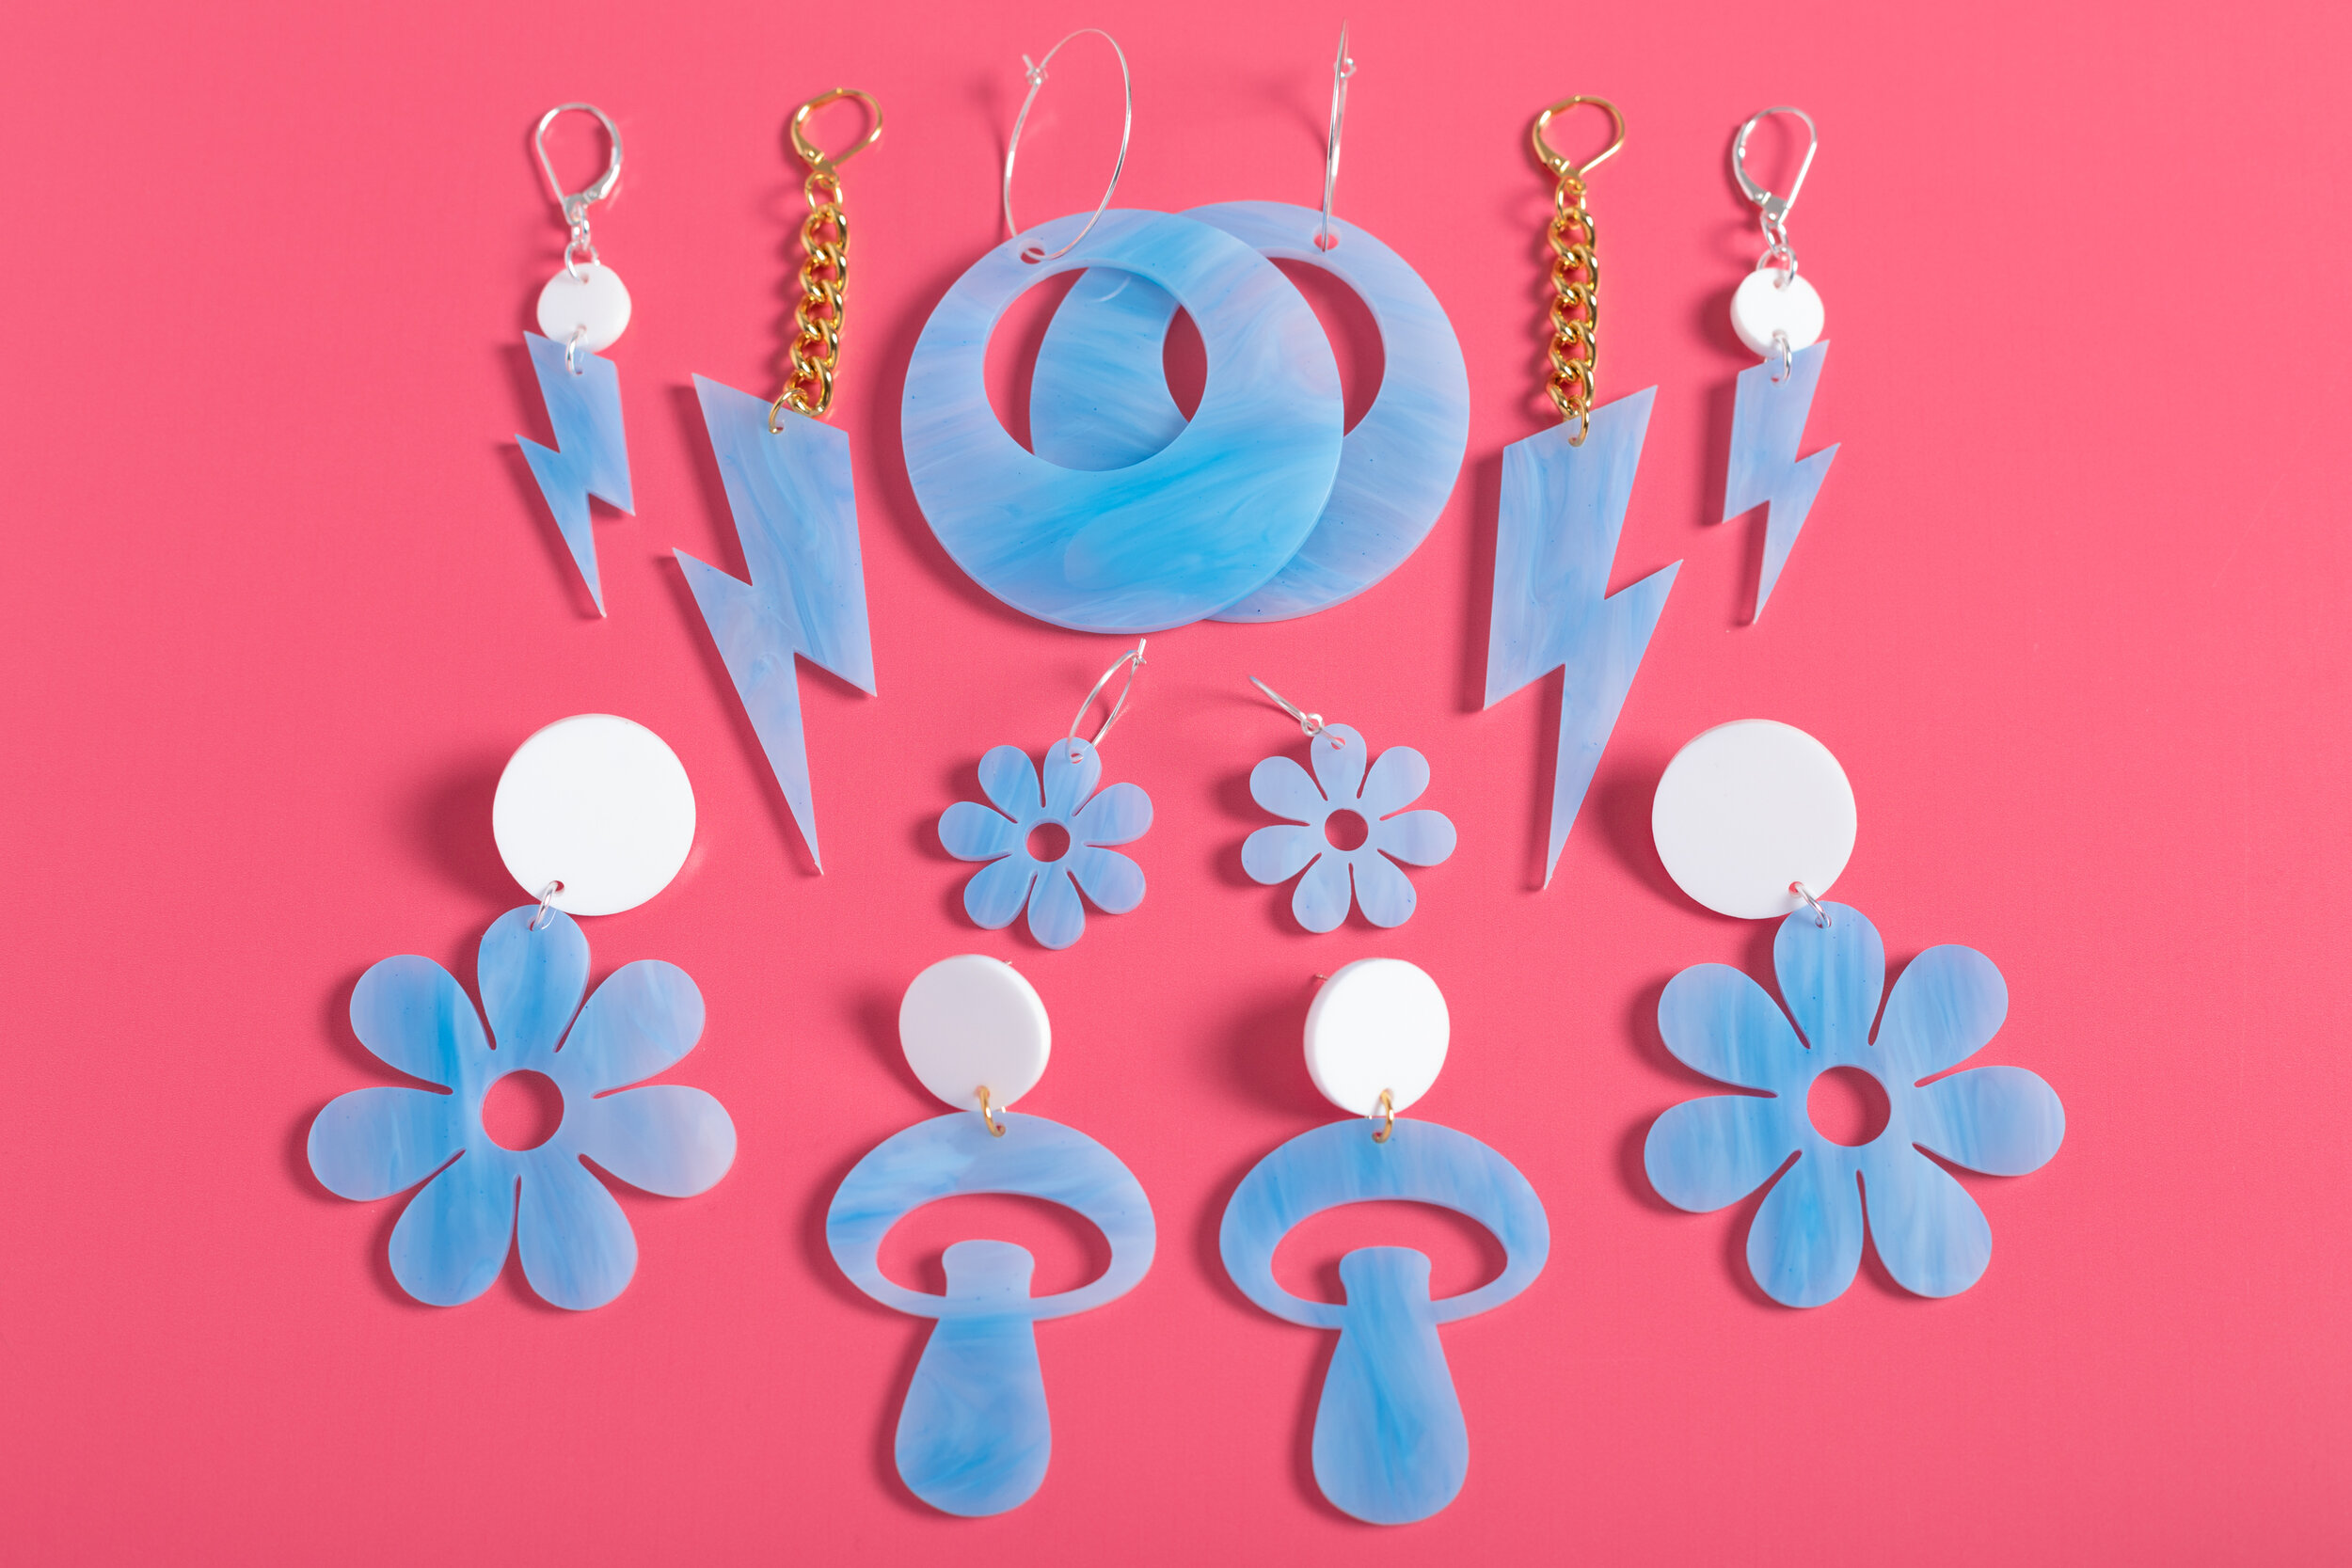 MindFlowers_Psychedelic_Marble_Blue_Accessories_Earrings_New_Summer_Color-2.jpg